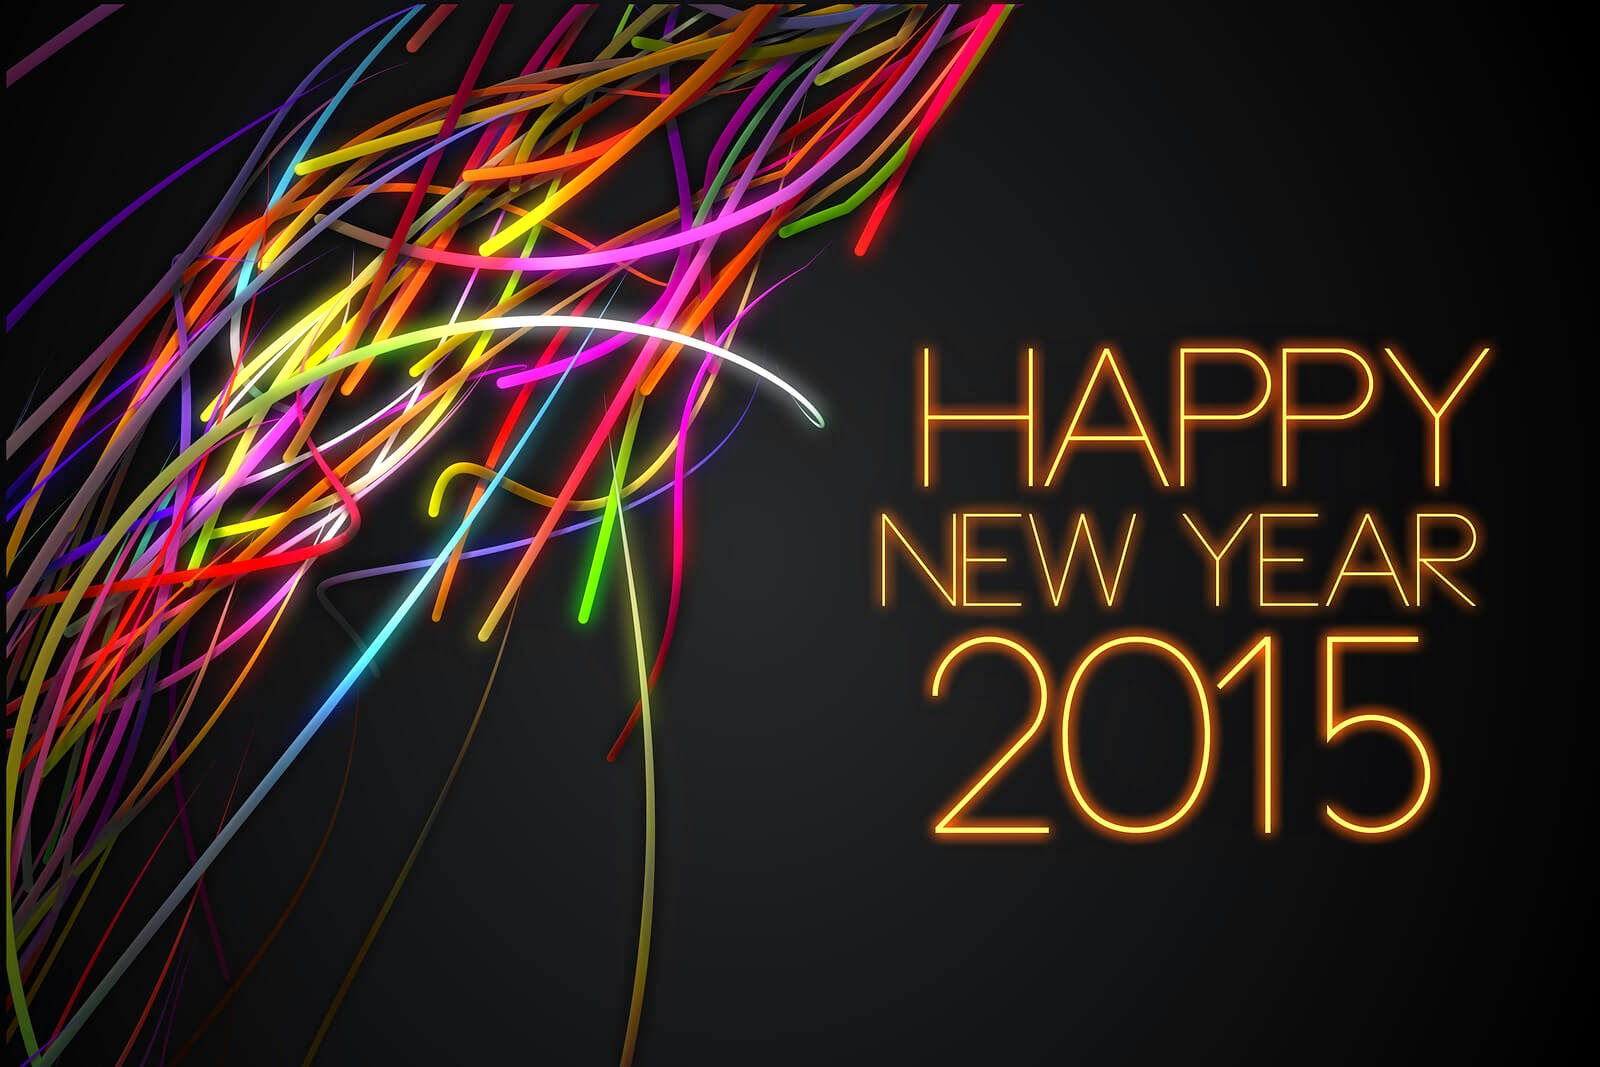 happy new year 2015 twitter